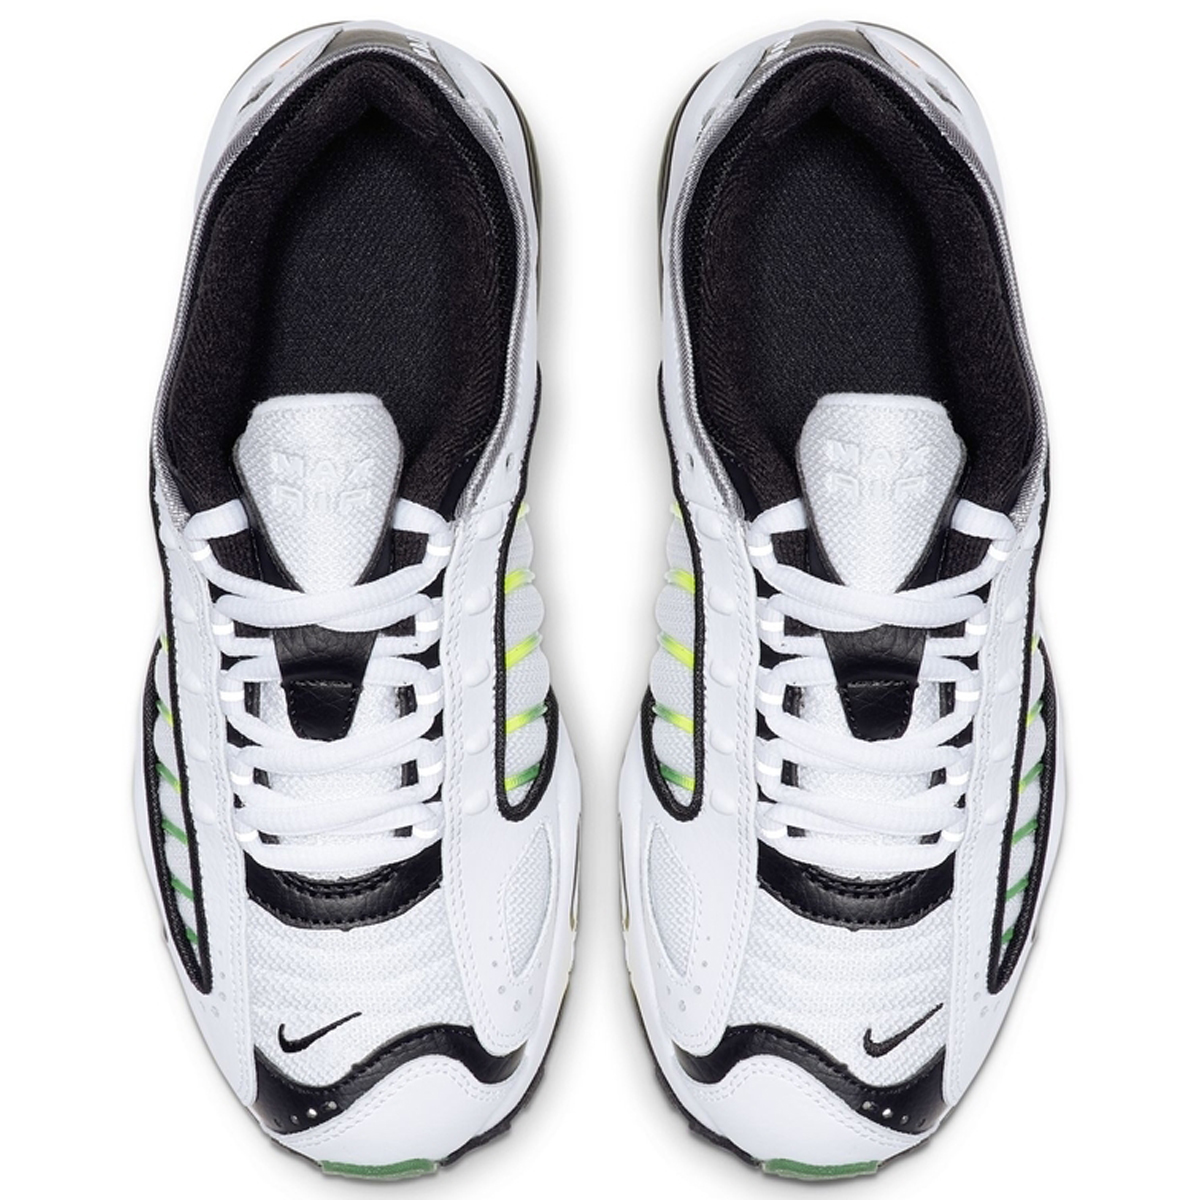 buy online 78f52 be648 Nike-Air-Max-Tailwind-IV-Retro-2019-2